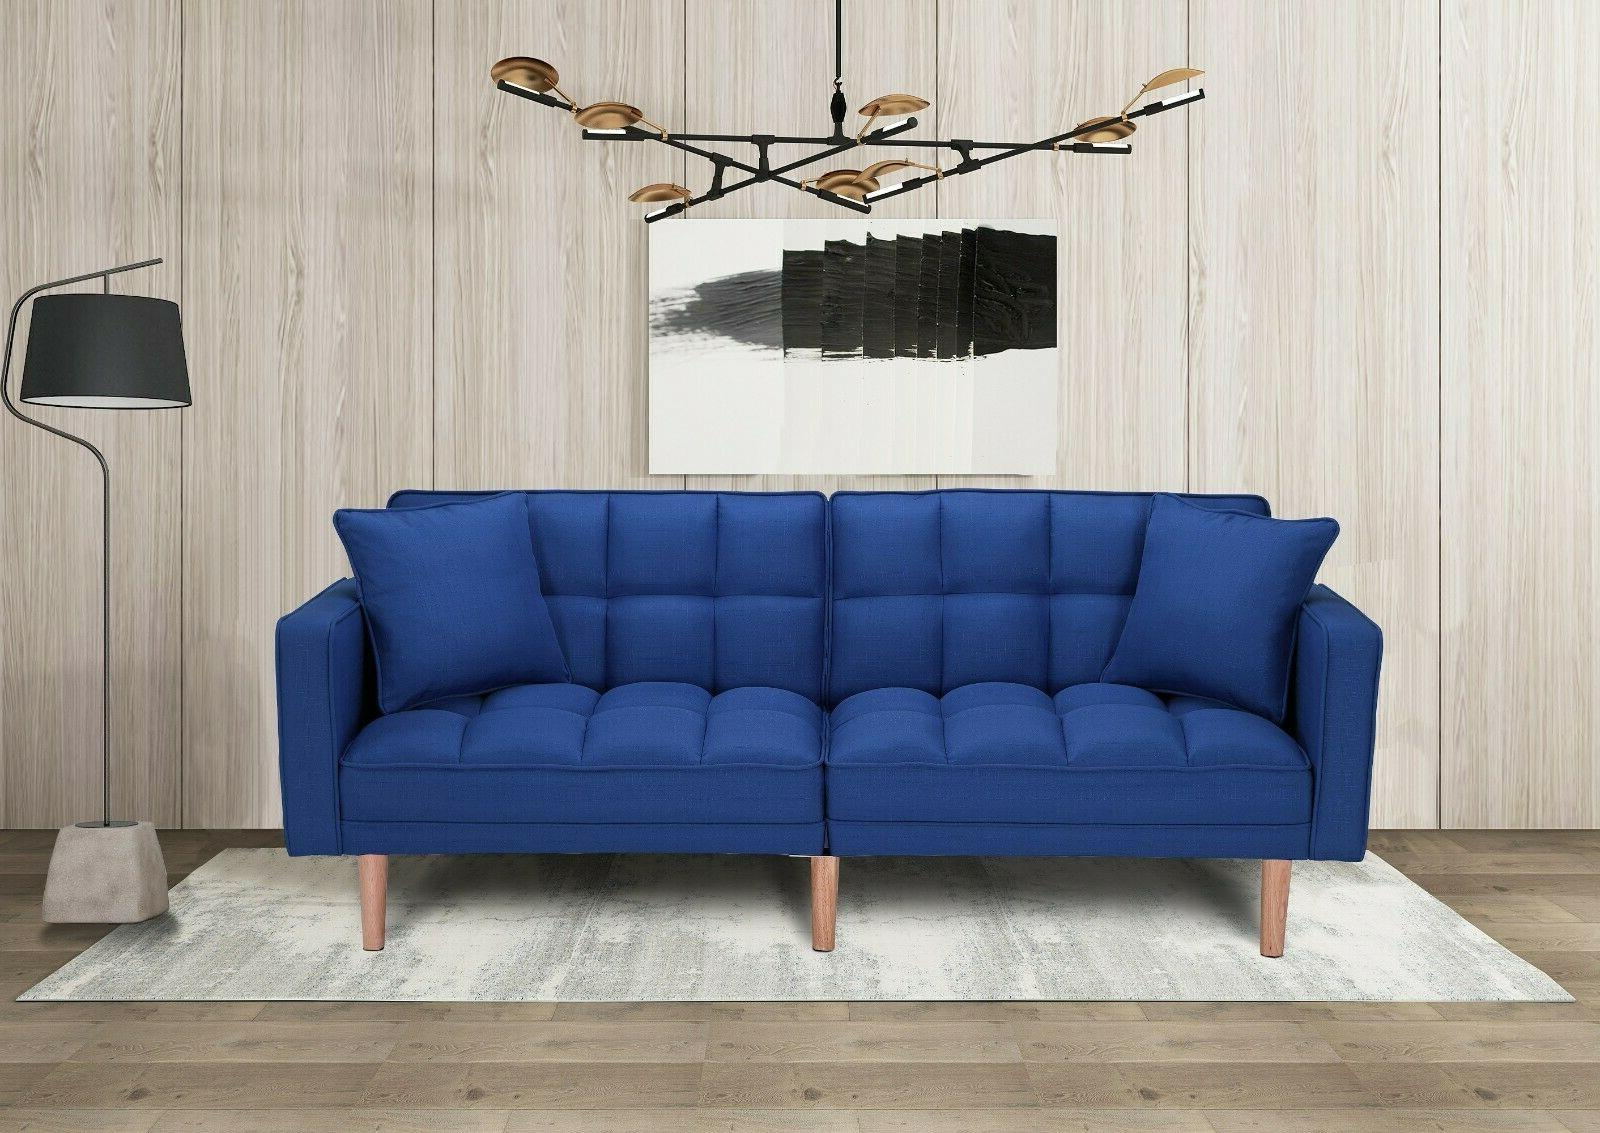 Futon Sofa Back Lounge Couch Pillows